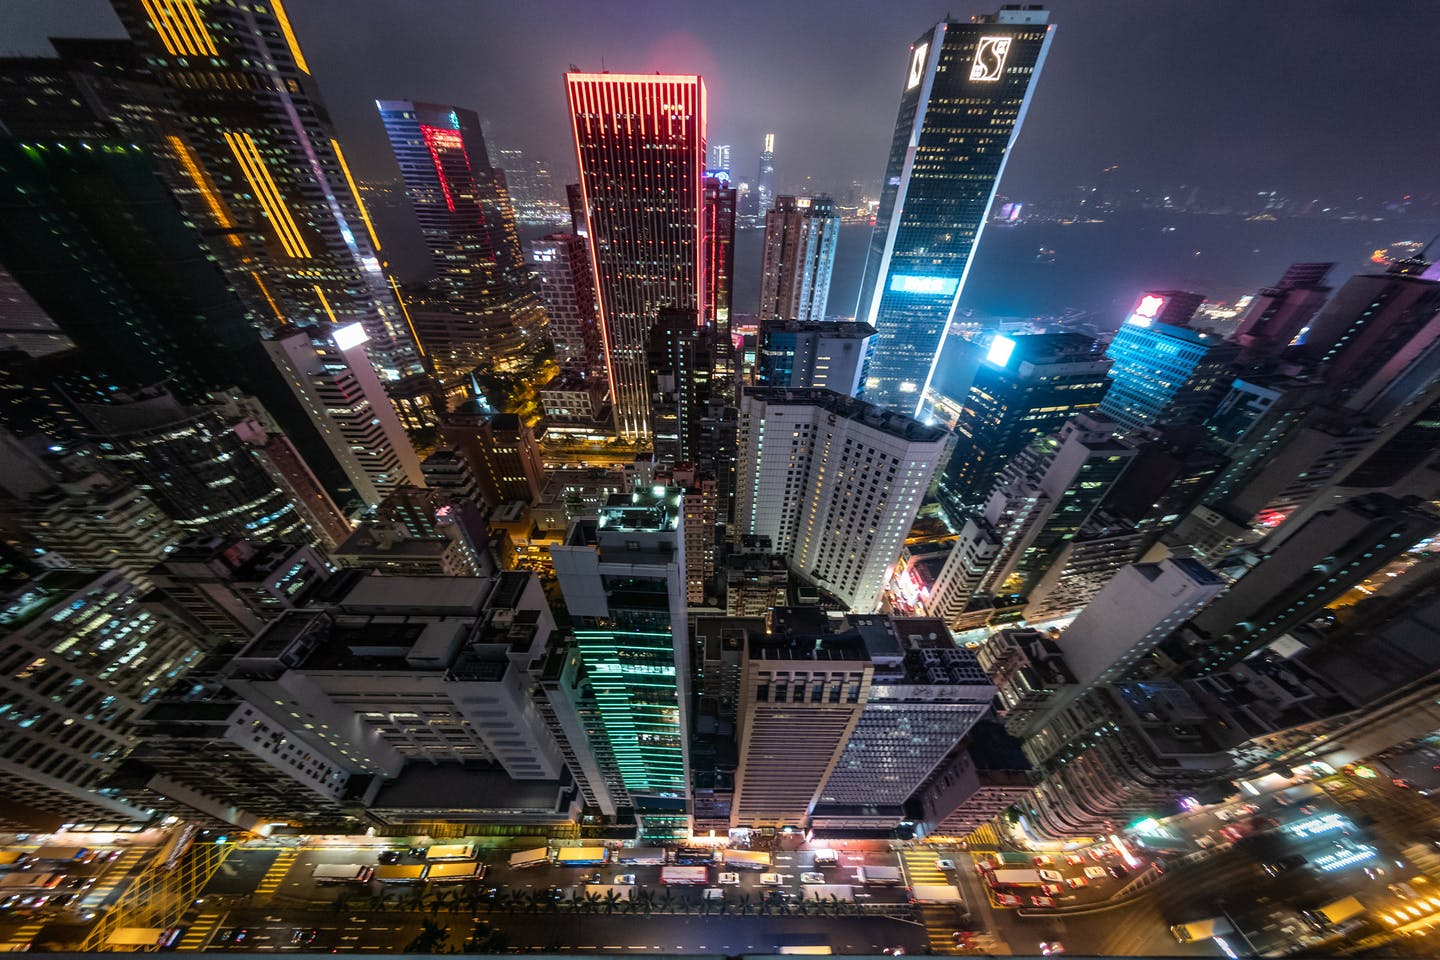 hong kong skyline at night rising from the ground